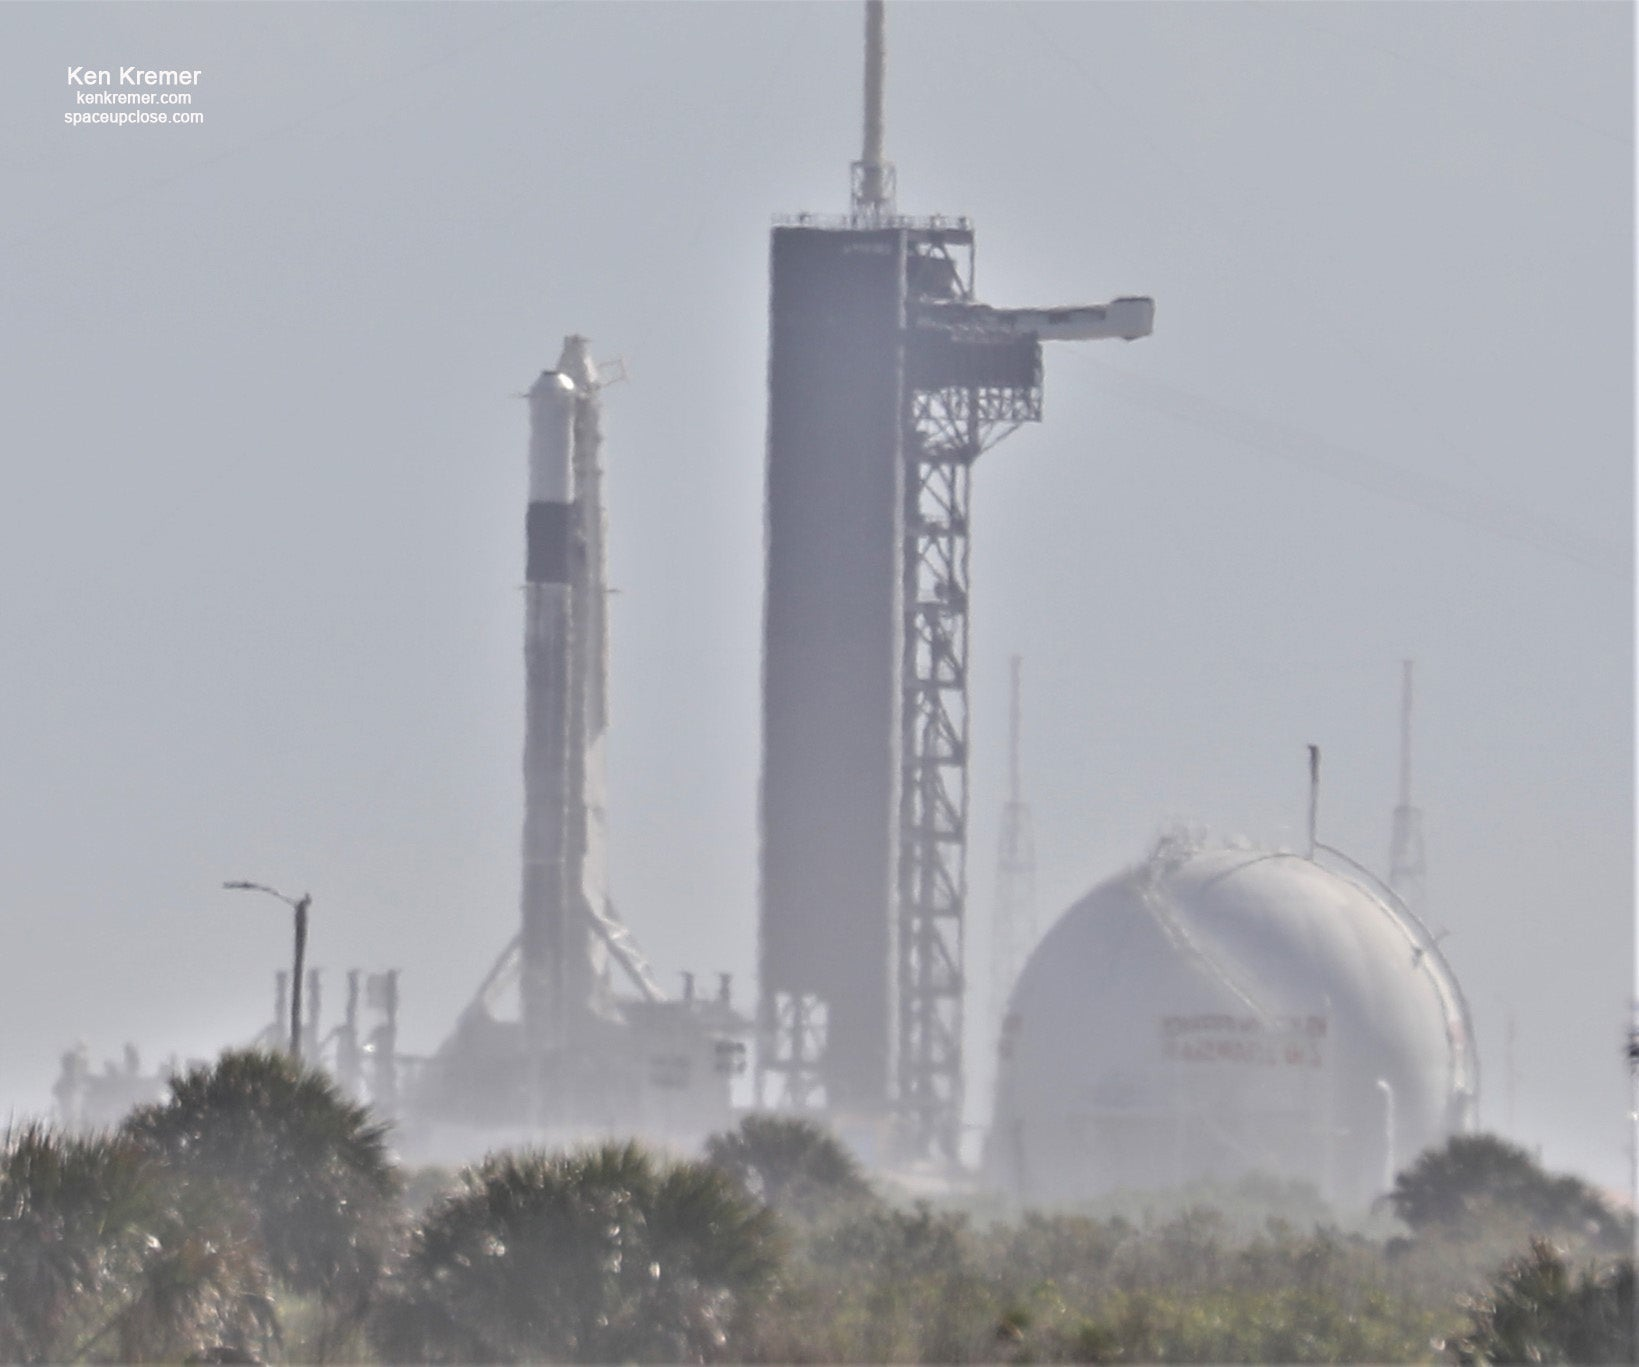 SpaceX prepares a Falcon 9 rocket for static-firing ahead of Crew Dragon's crucial test